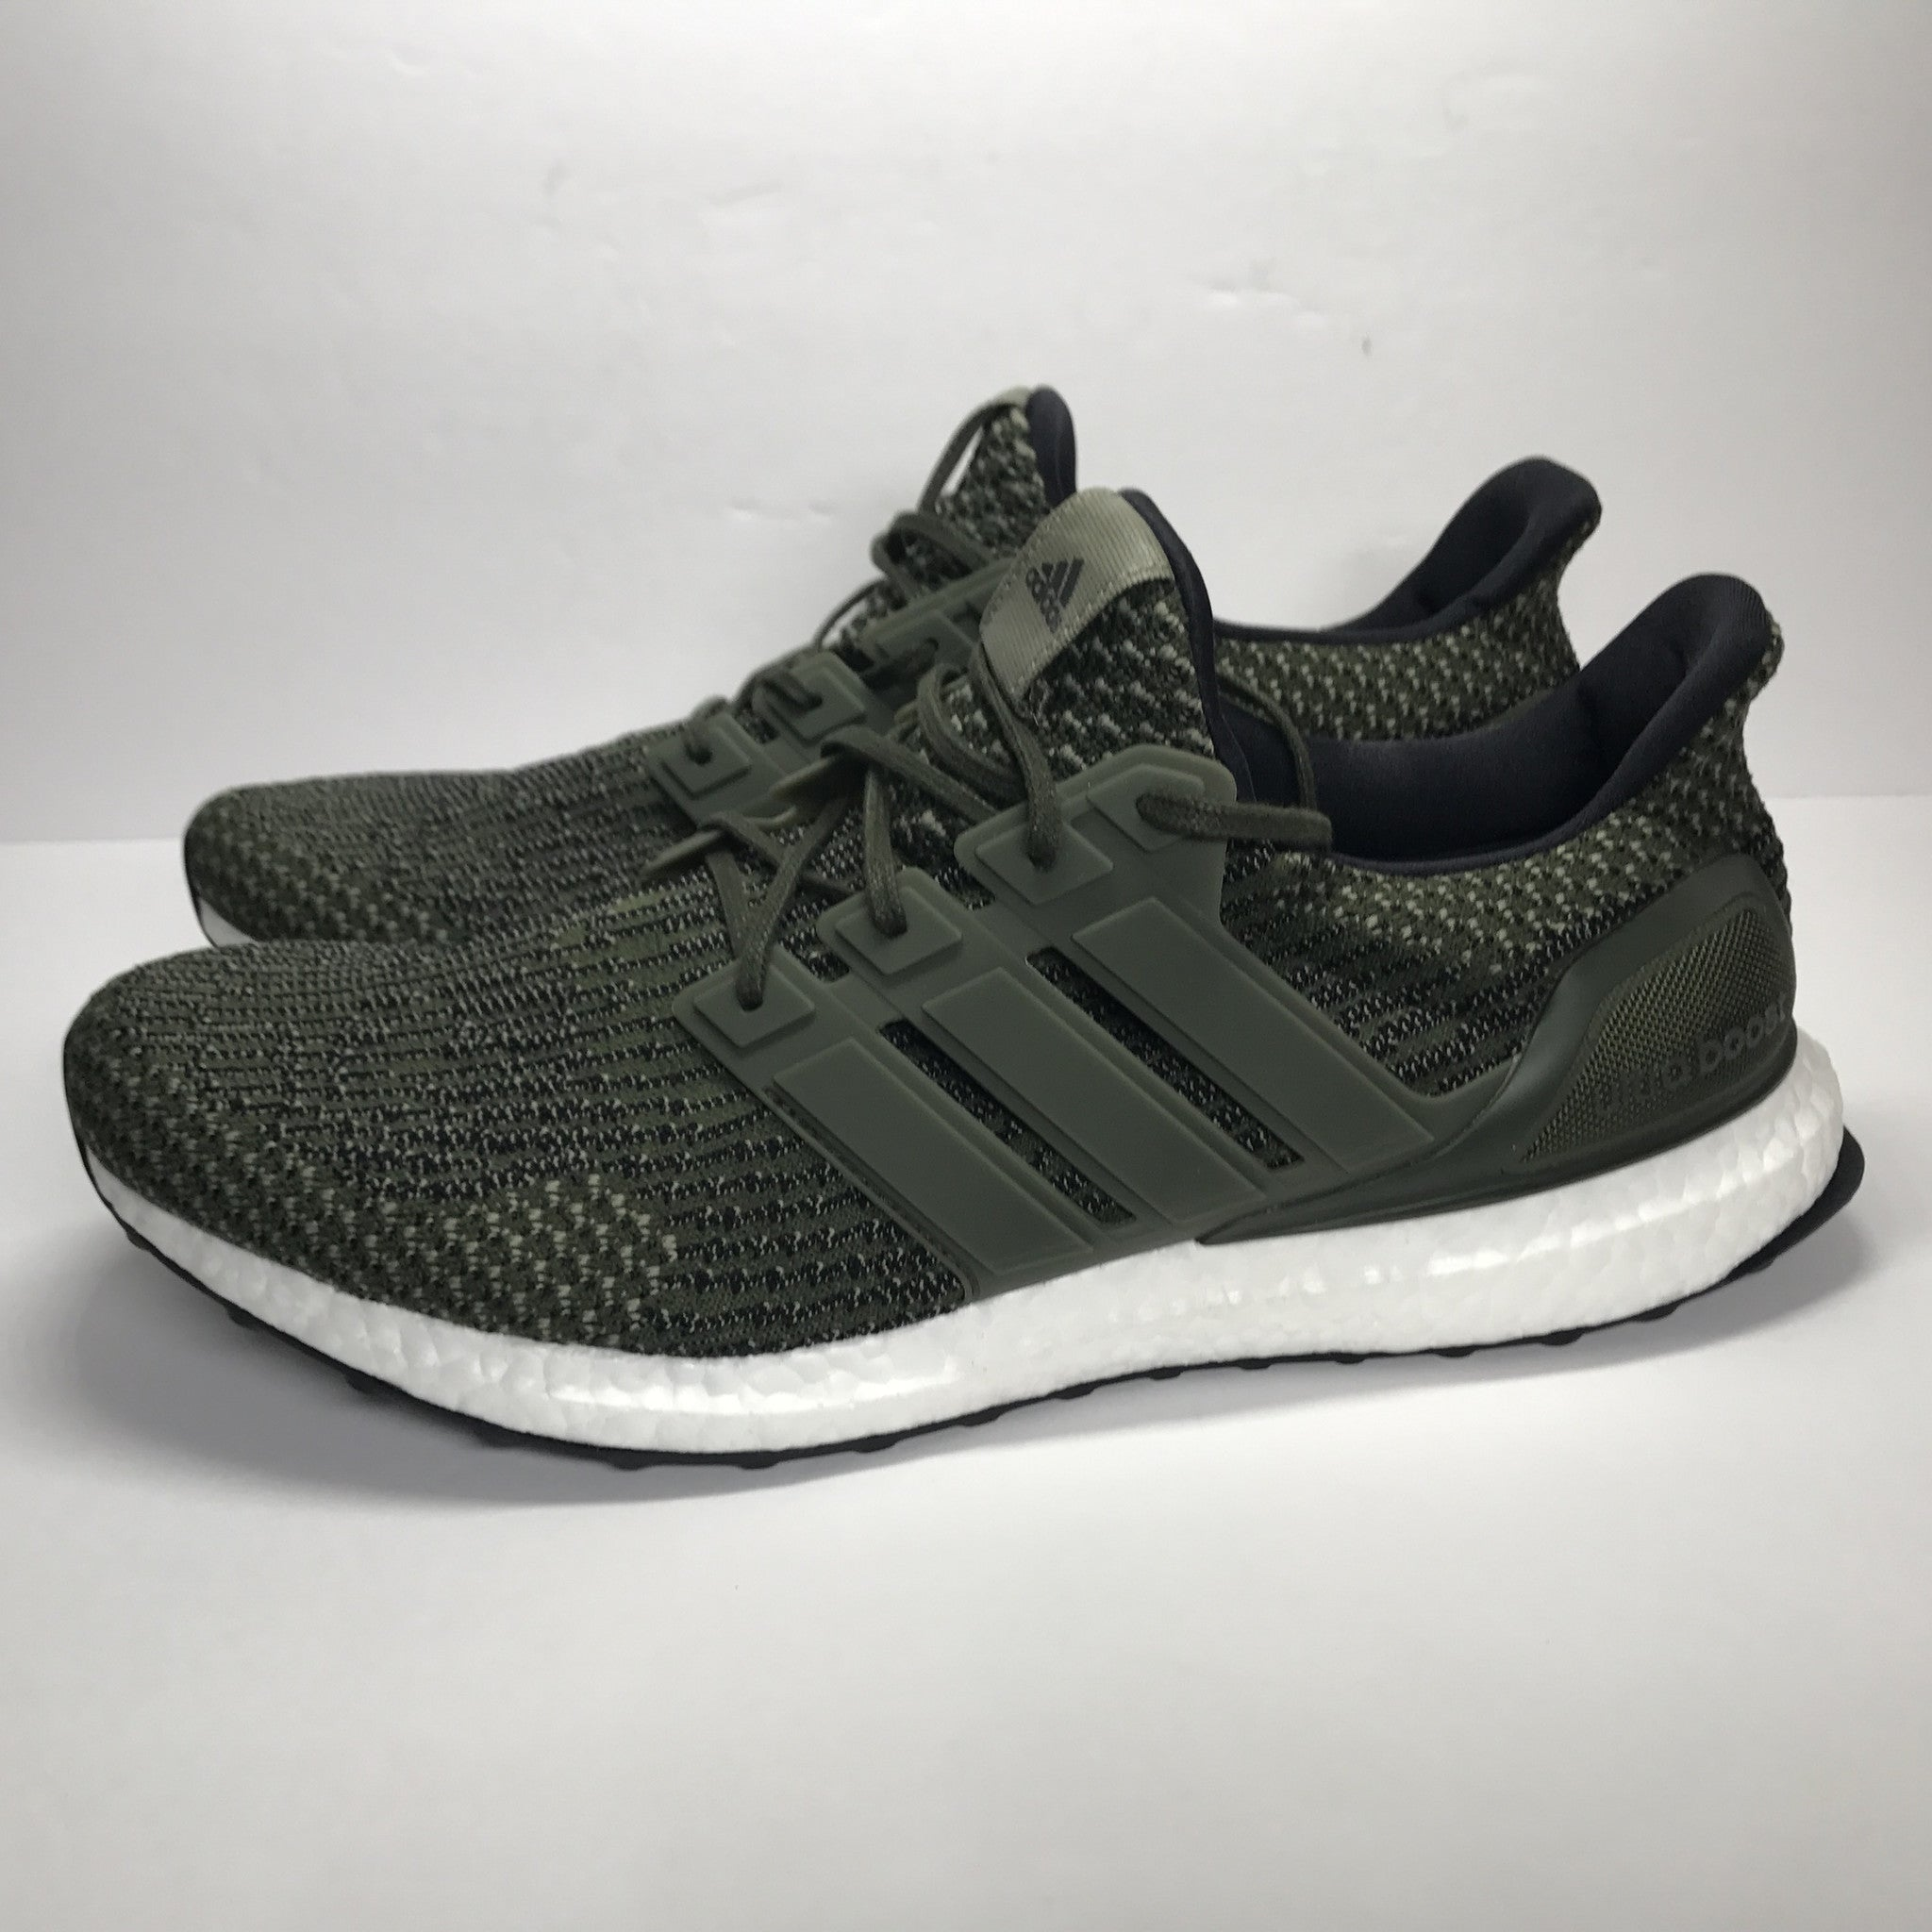 上市速報/ adidas Ultra BOOST 3.0 LTD 販售資訊整理 KENLU.net